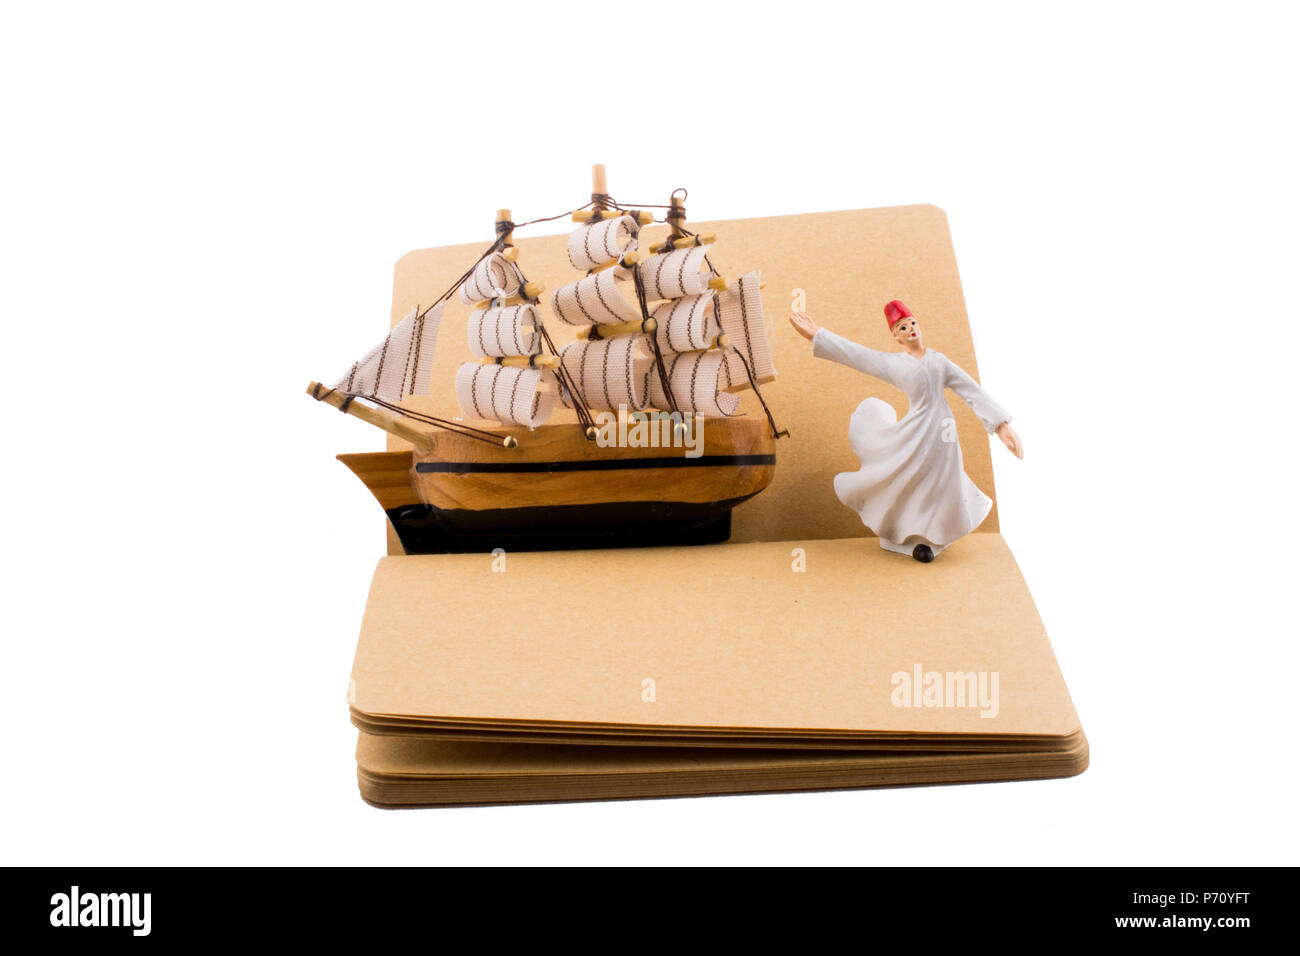 Sufi Dervish and a ship on a notebook on white background - Stock Image